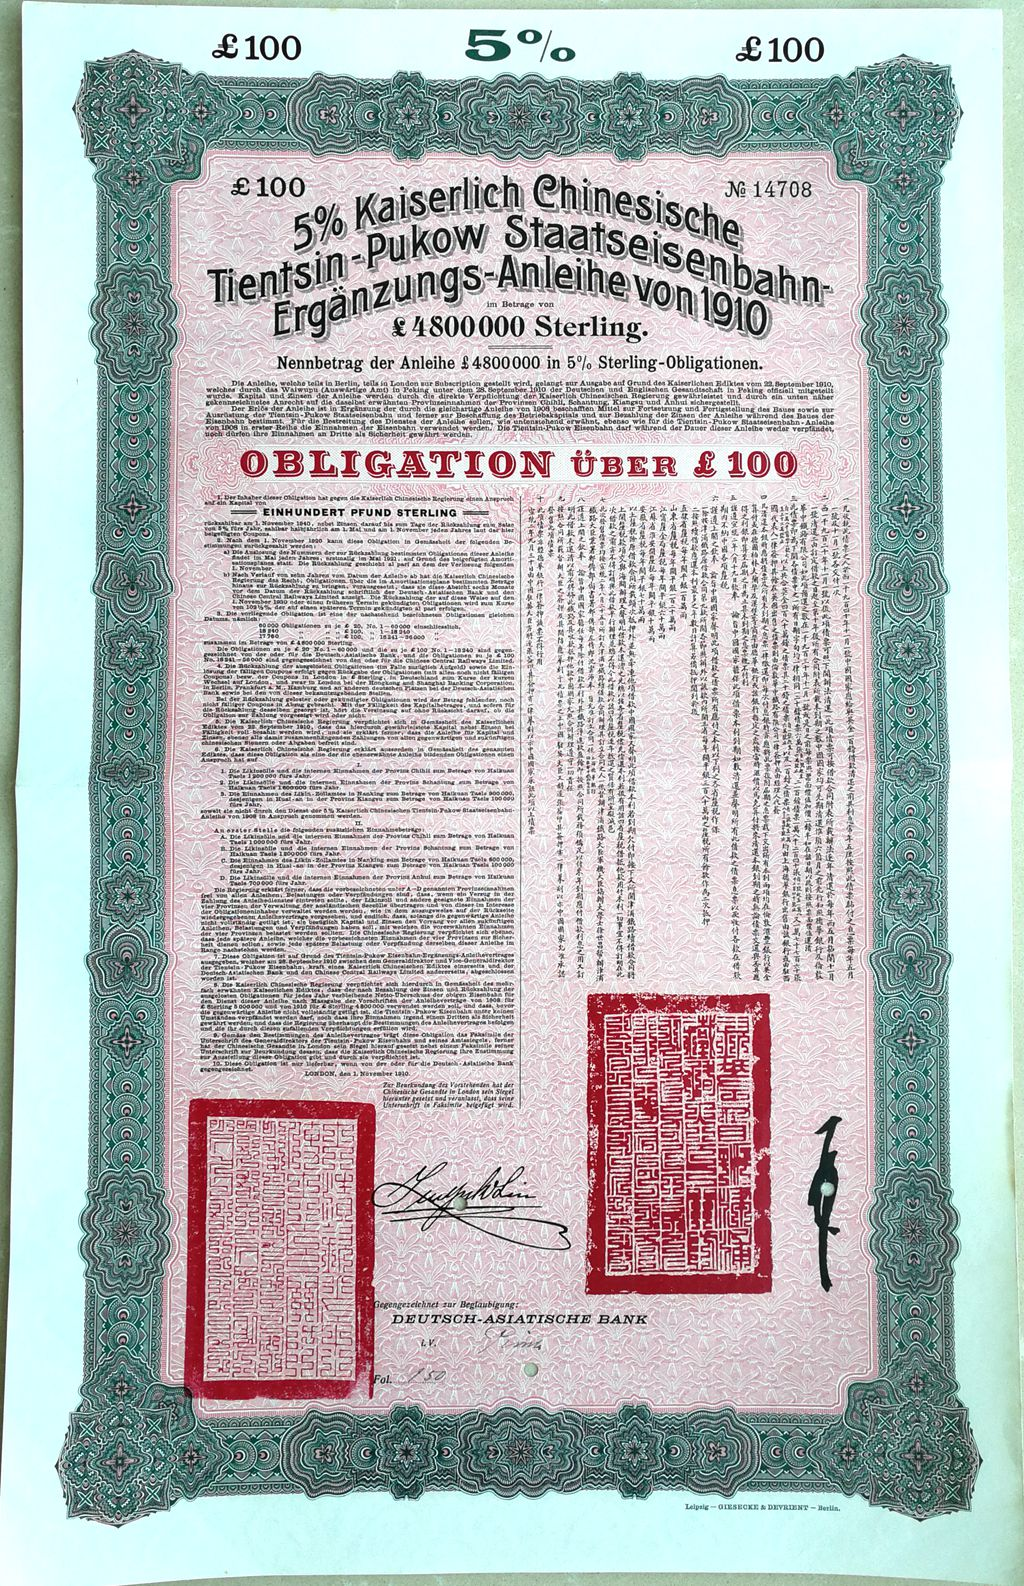 B9052, China 5% Tientsin-Pukow Railway Supplementary Loan, 100 Pounds Bond 1910